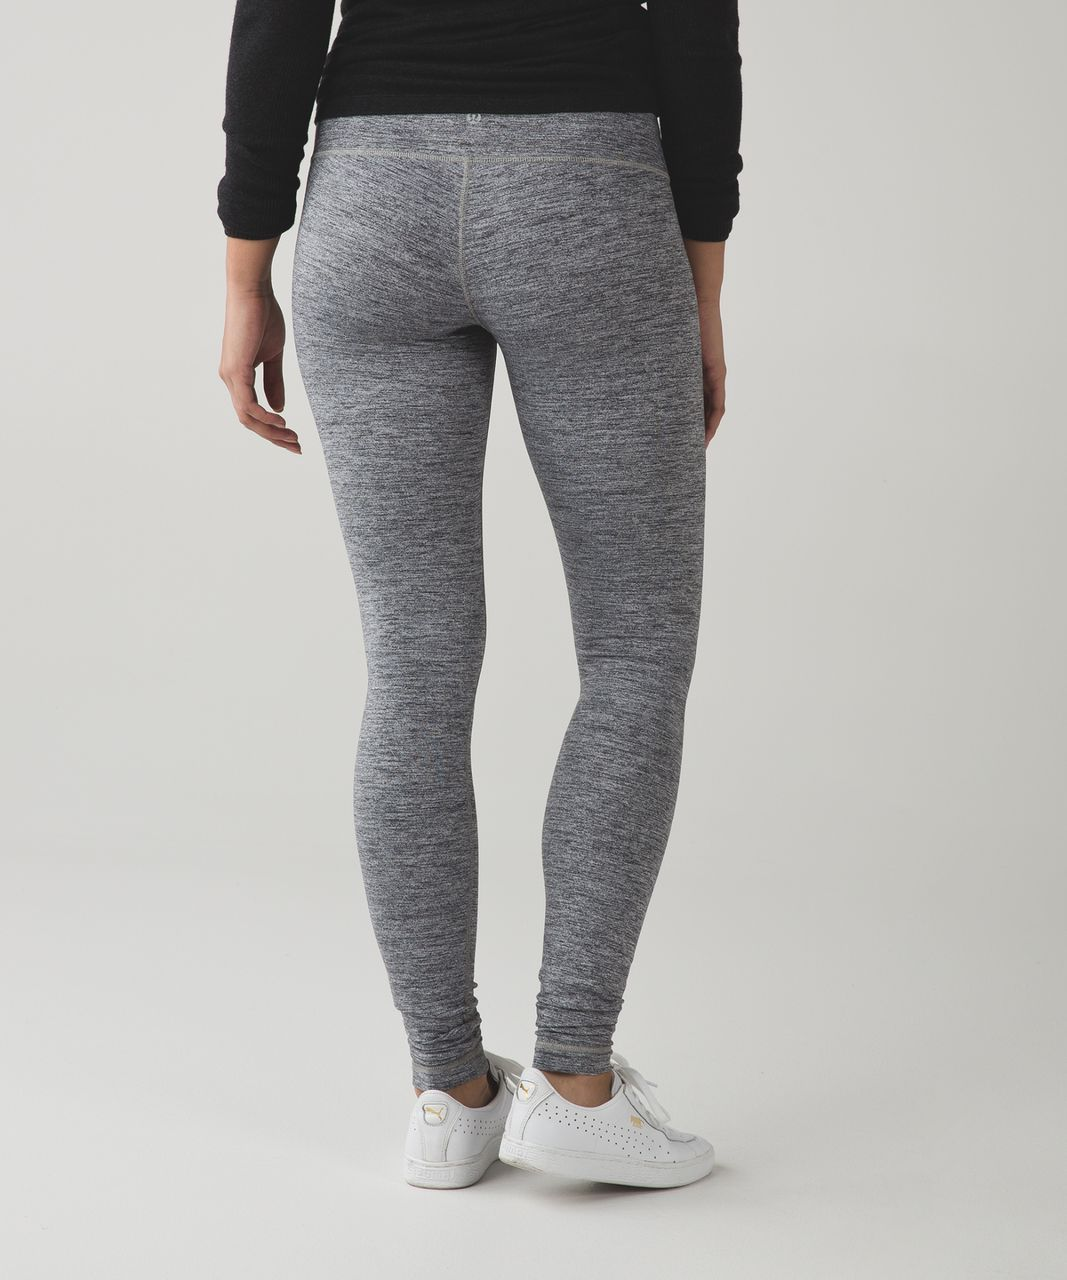 Lululemon Wunder Under Pant III - Space Dye Camo Black Dark Slate